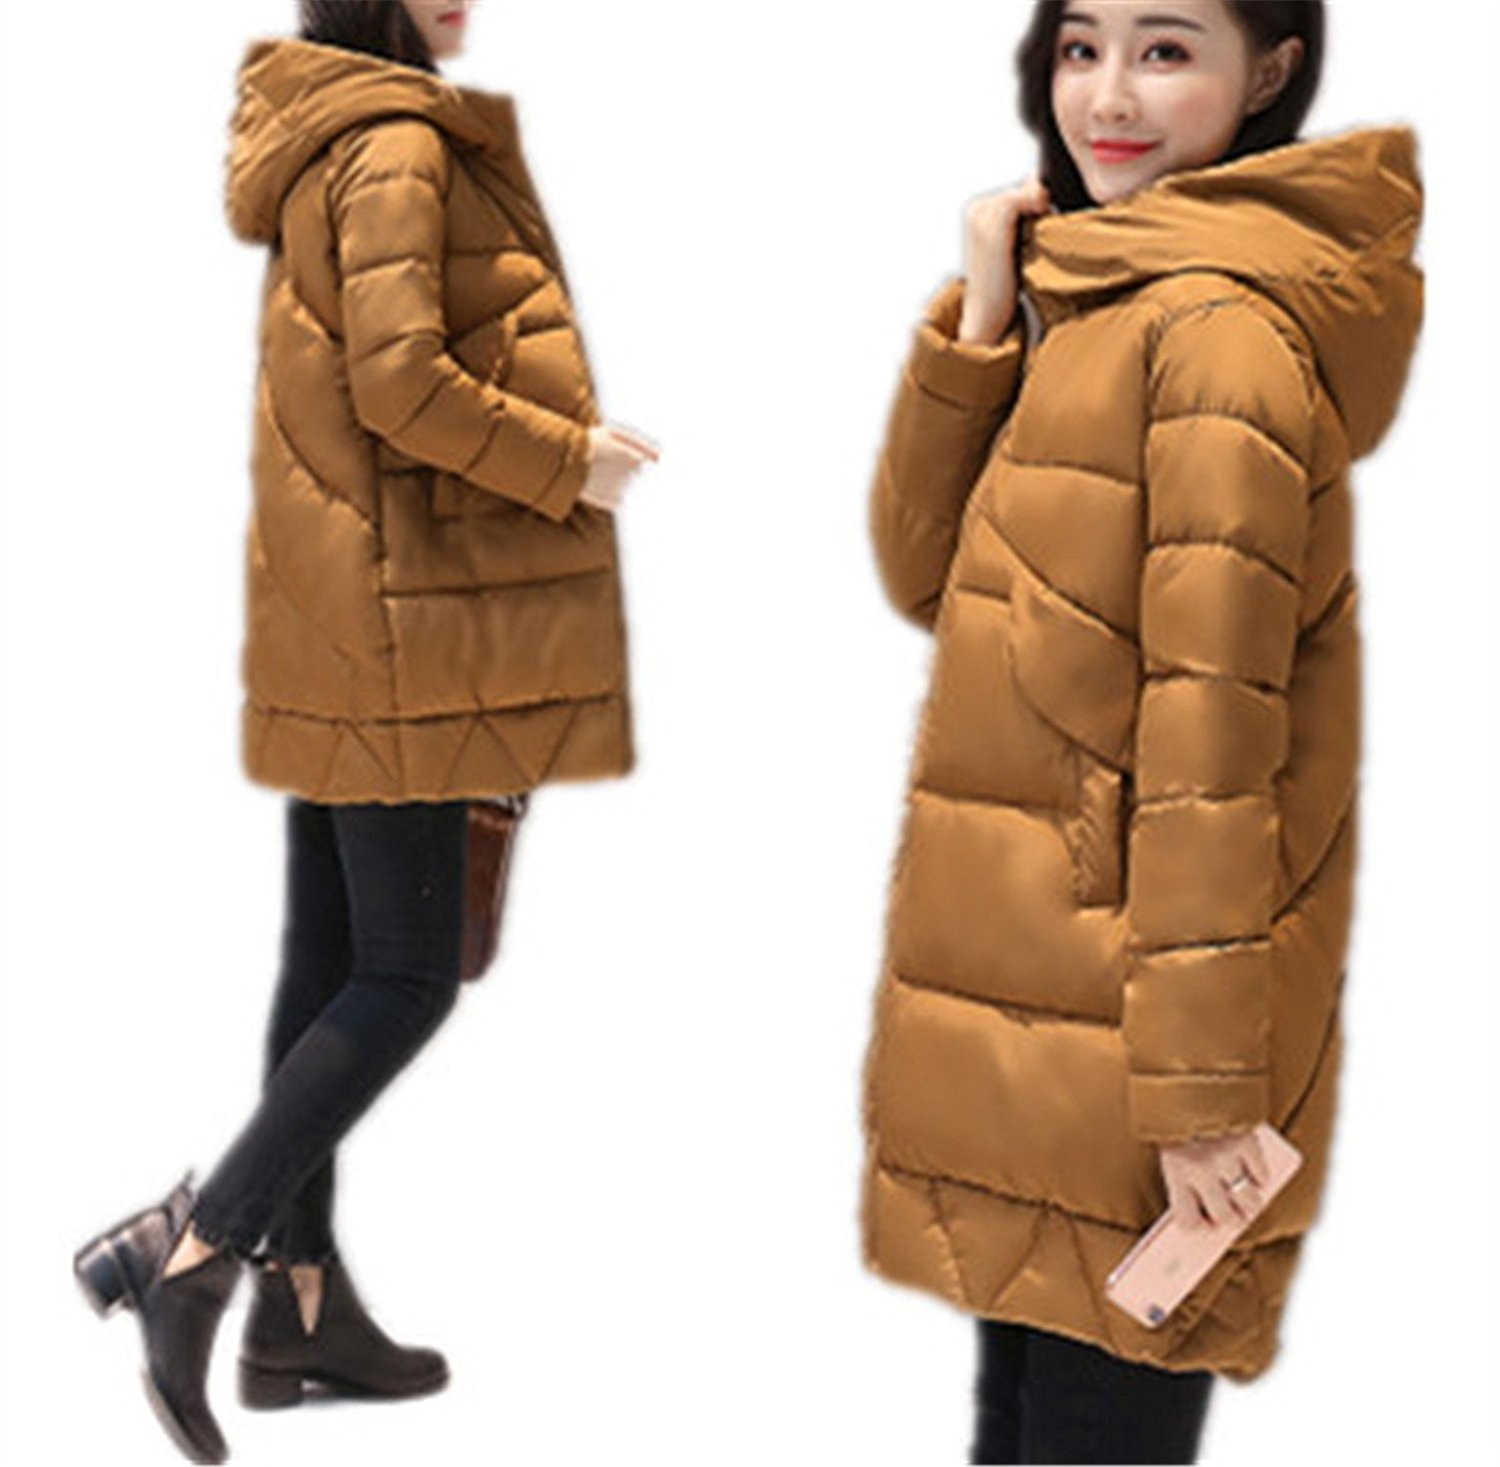 Josherly Winter Parkas Warm Thicken Middle-Long Hooded Jacket Coat Cotton Padded Parkas Coat M-XXL